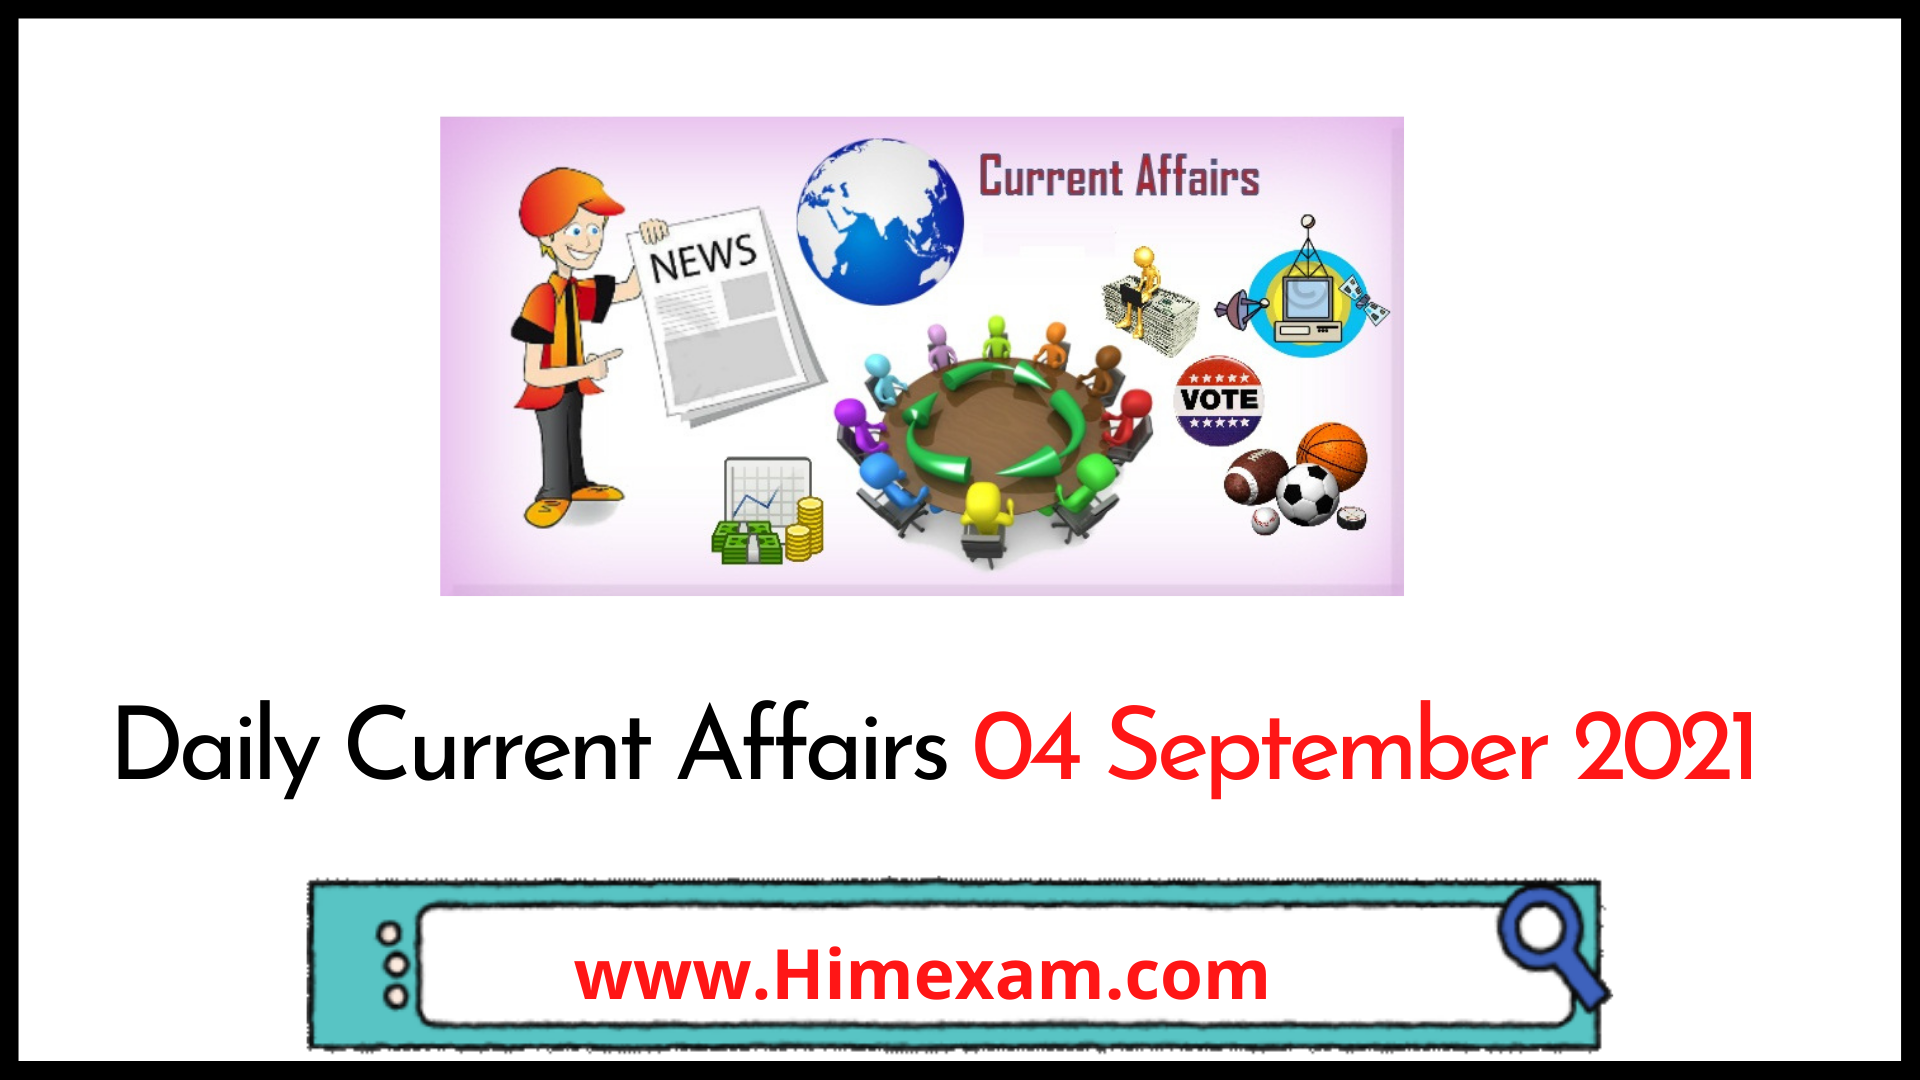 Daily Current Affairs 04 September 2021